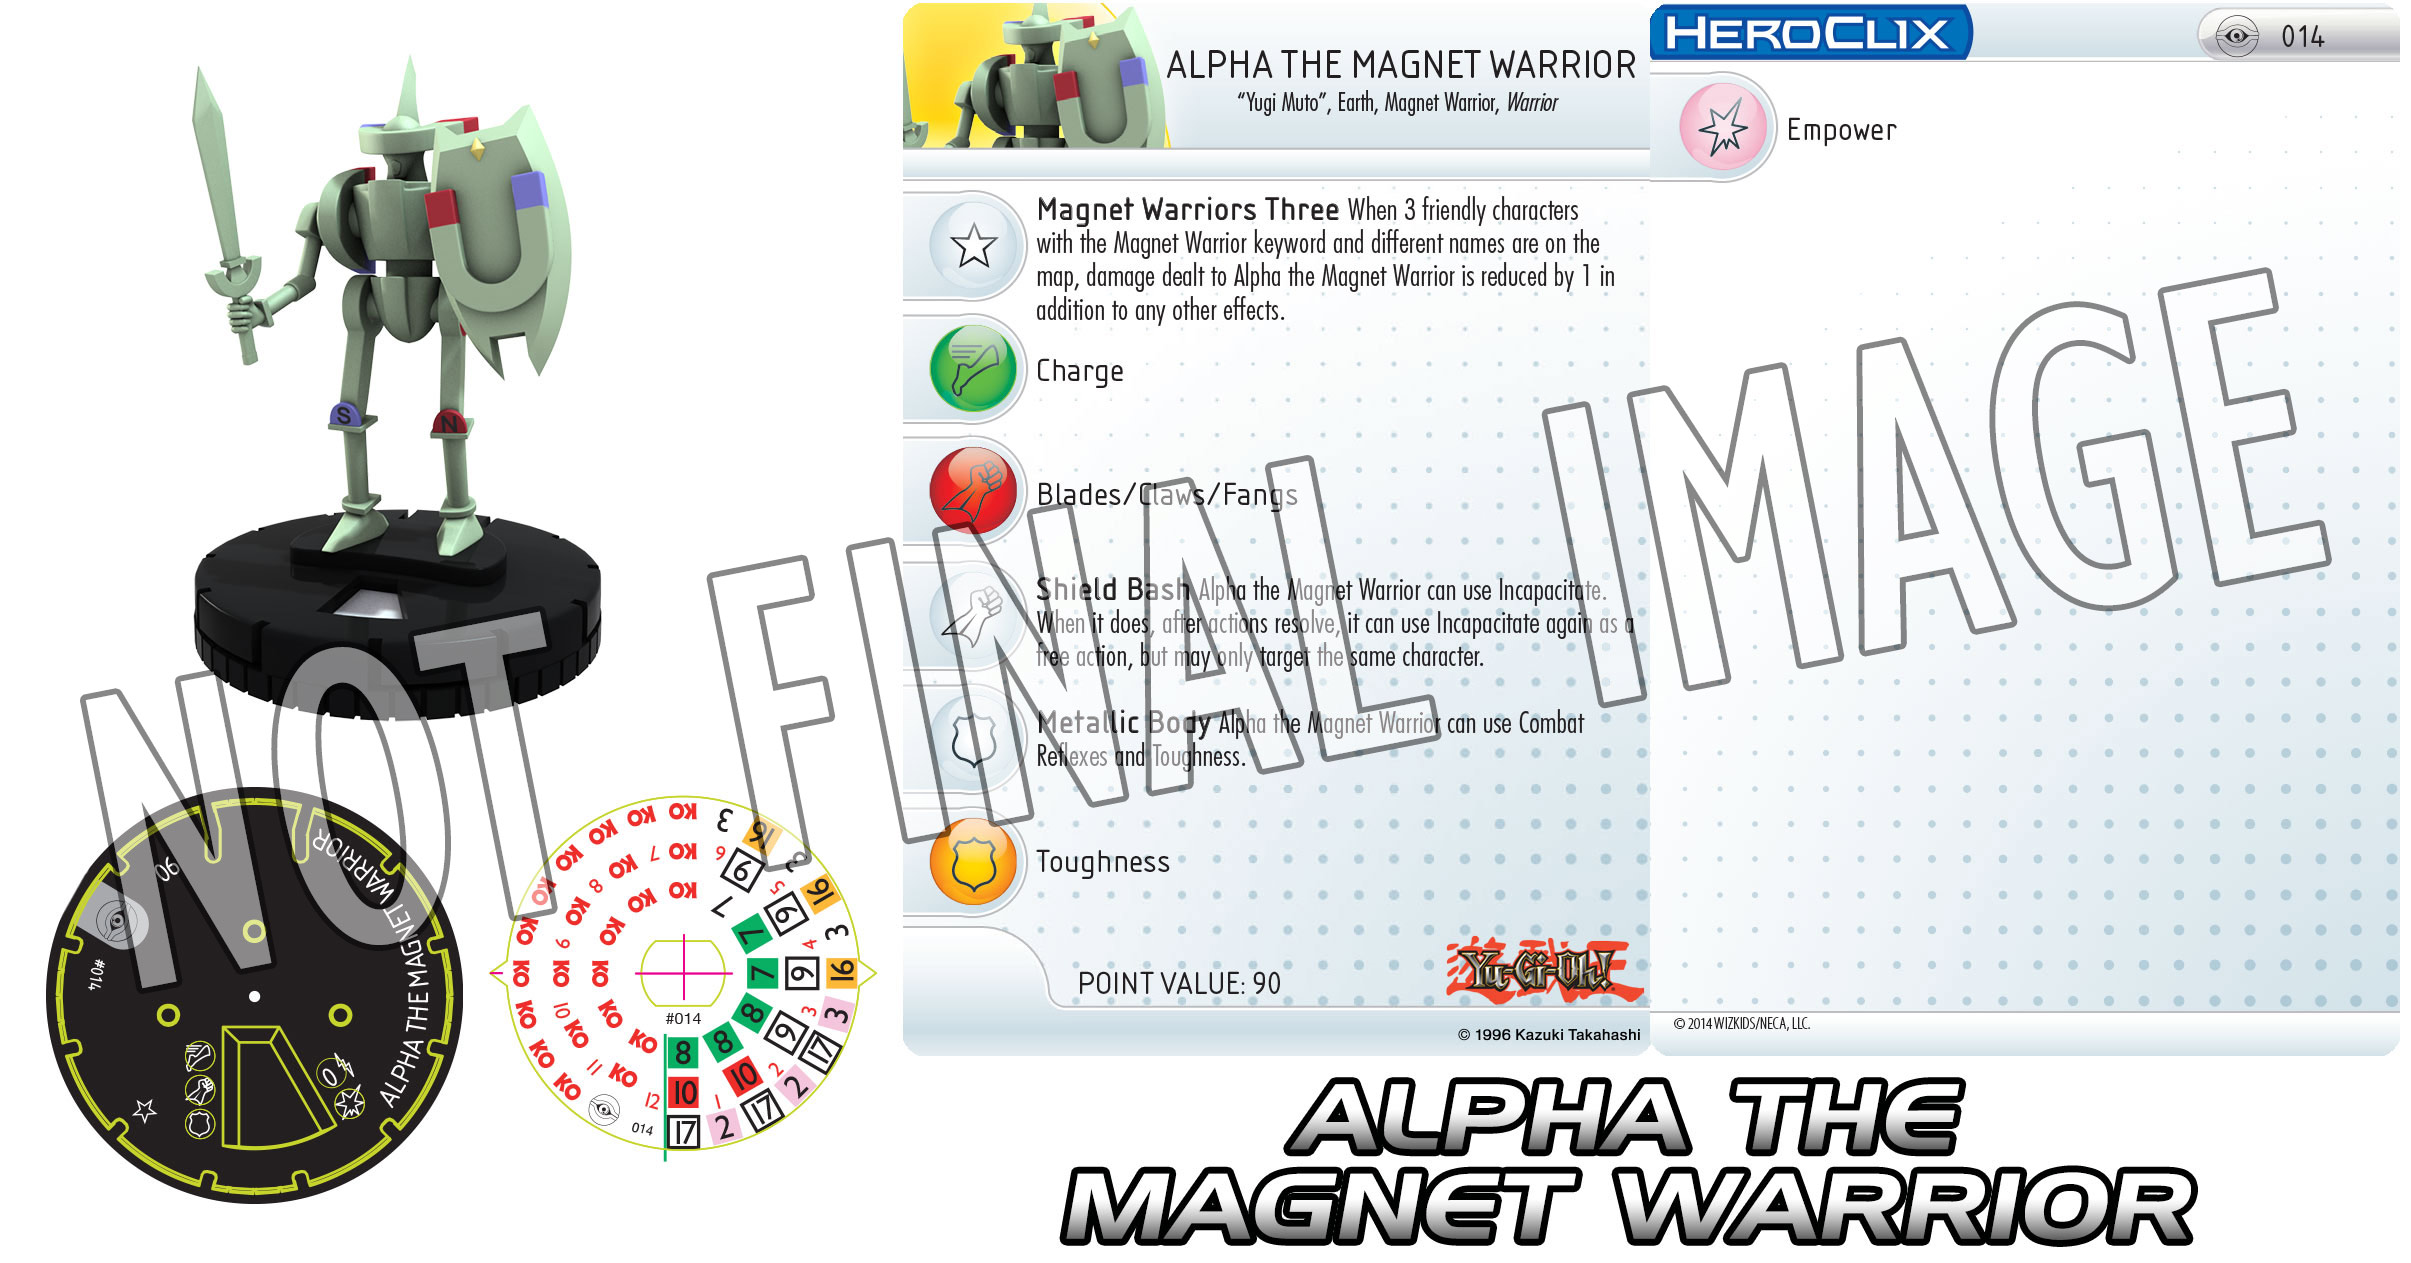 alpha-the-magnet-warrior